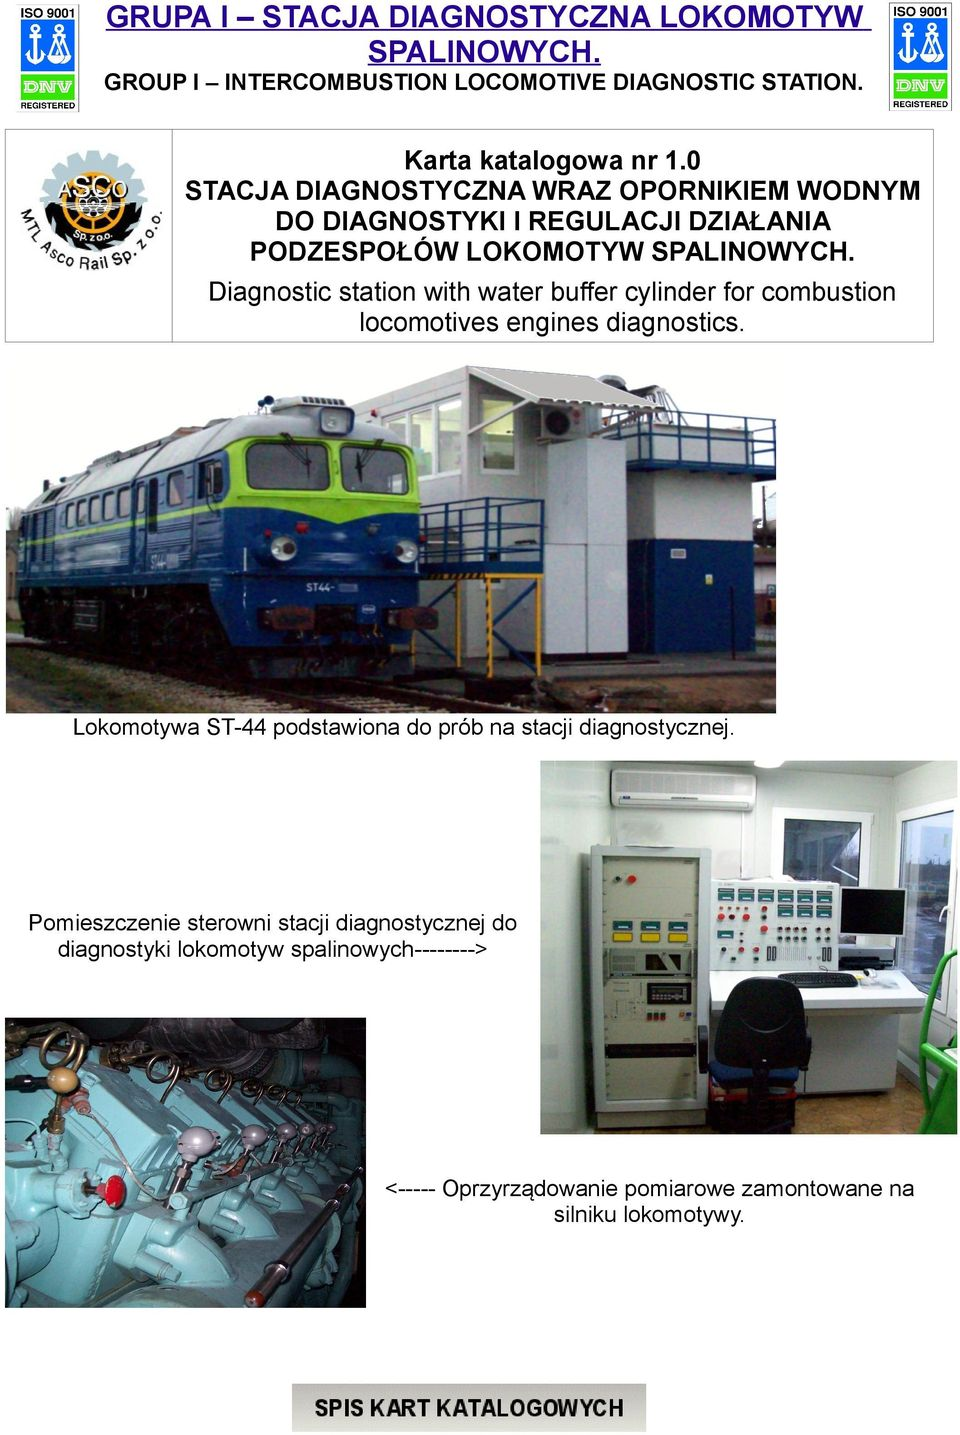 Diagnostic station with water buffer cylinder for combustion locomotives engines diagnostics.